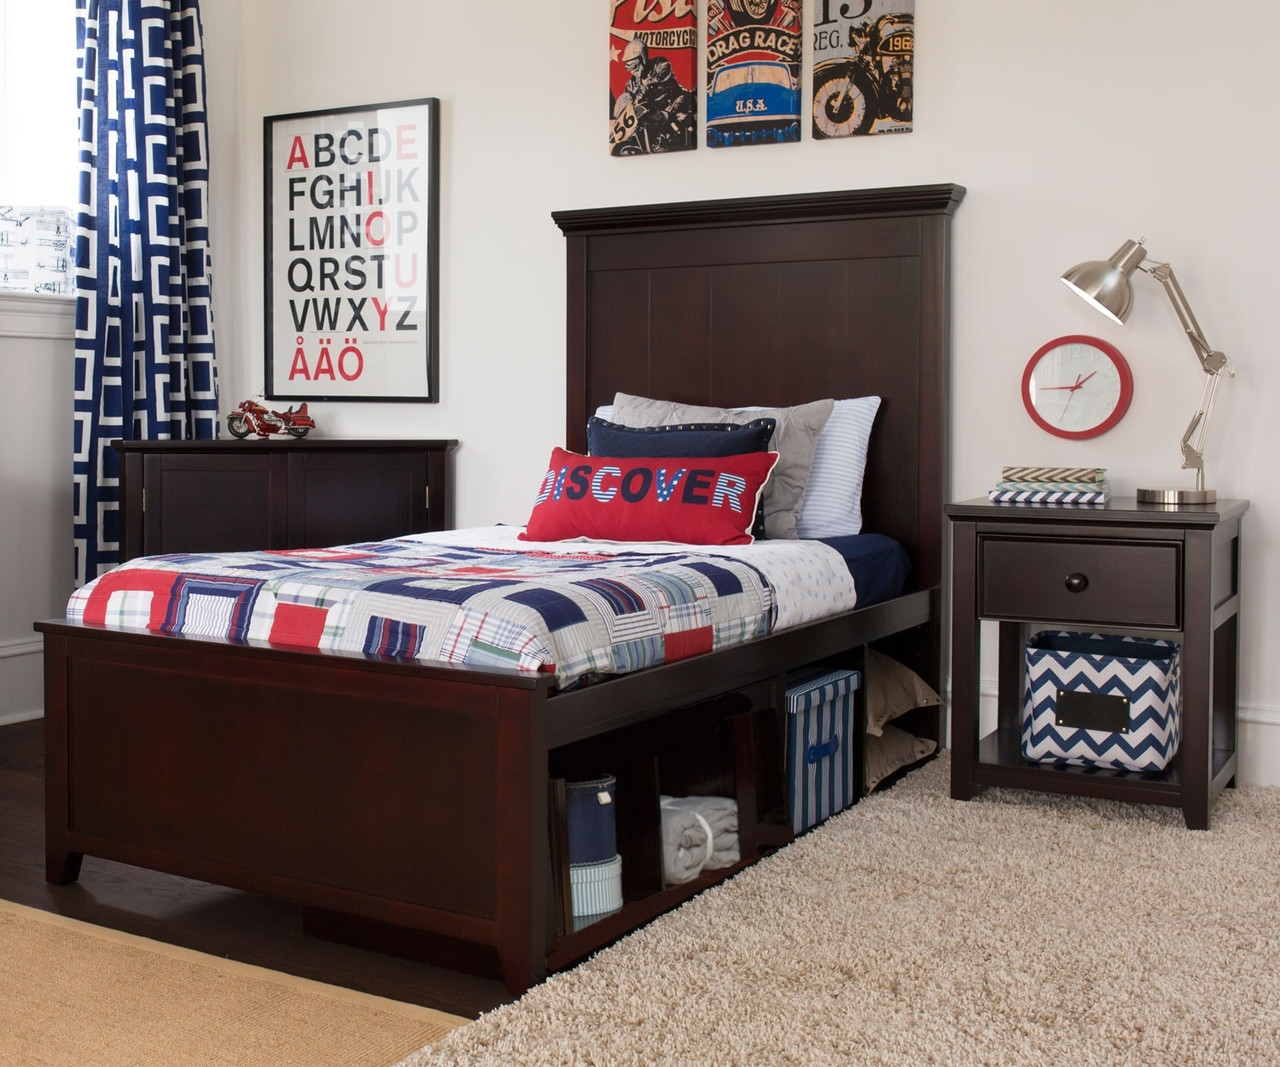 Craft furniture london twin size panel bed with cubbies in espresso finish craft kids Badcock home furniture more pompano beach fl